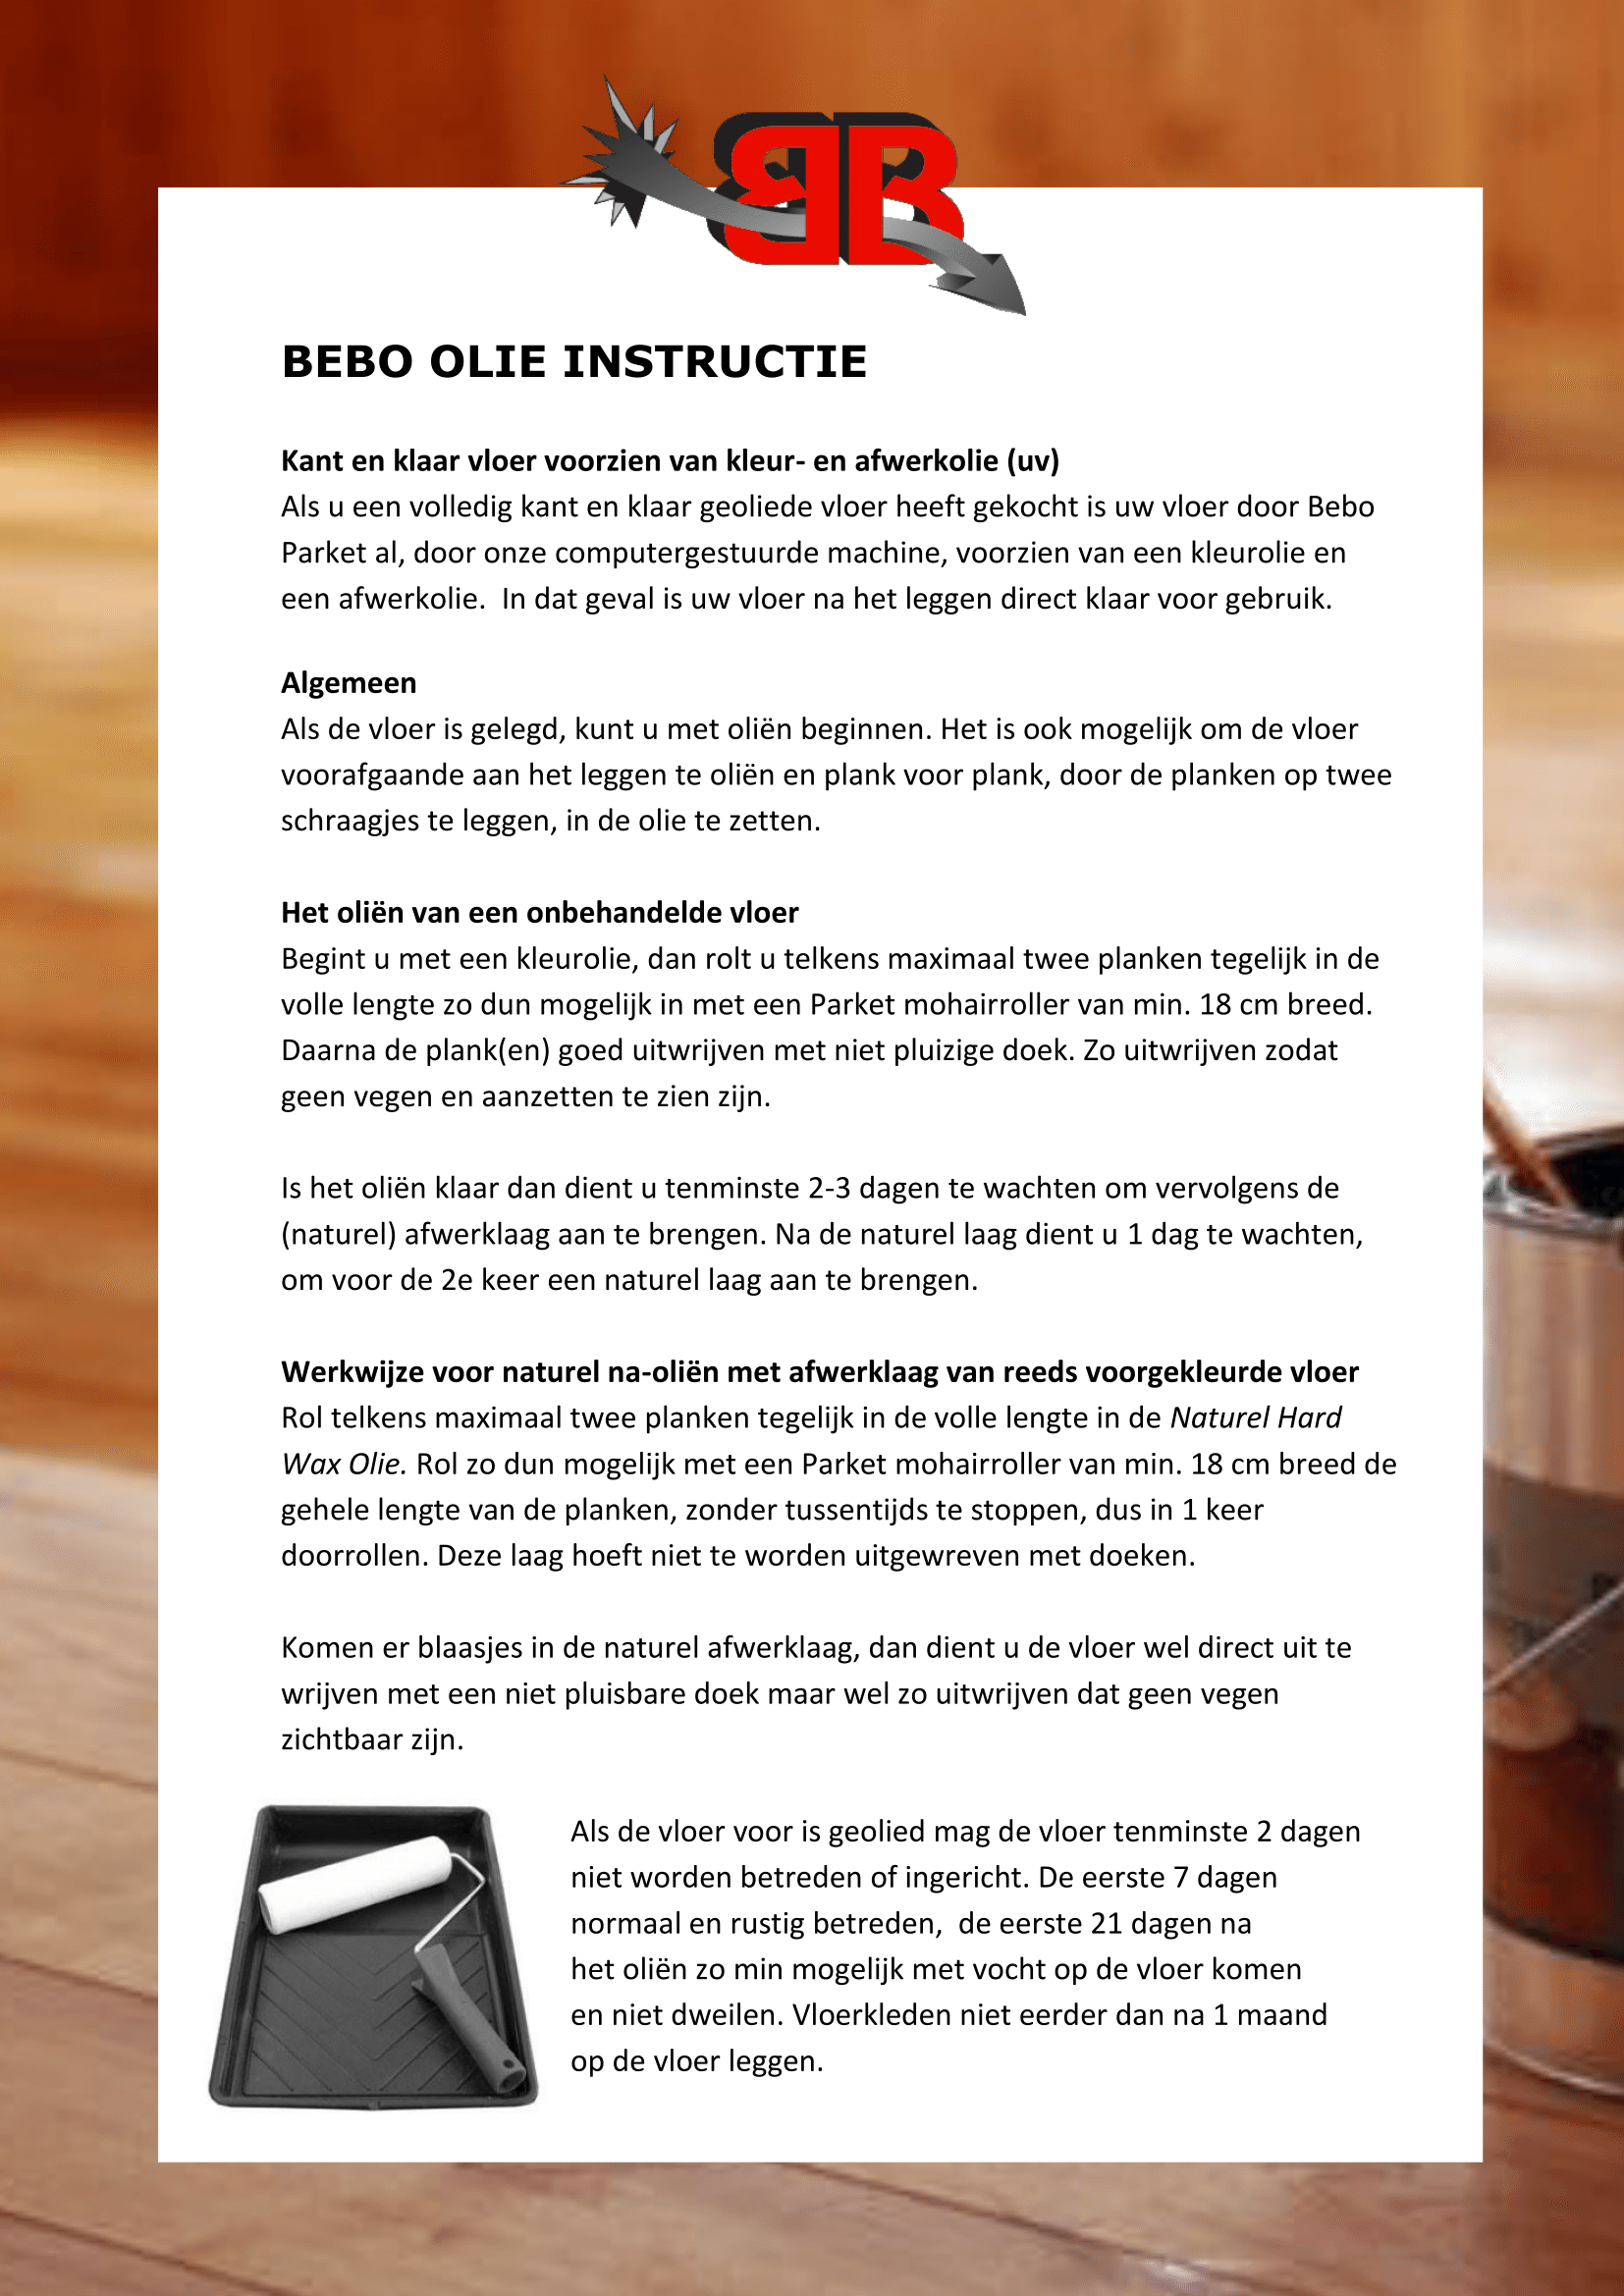 bebo-olie-instructie-1